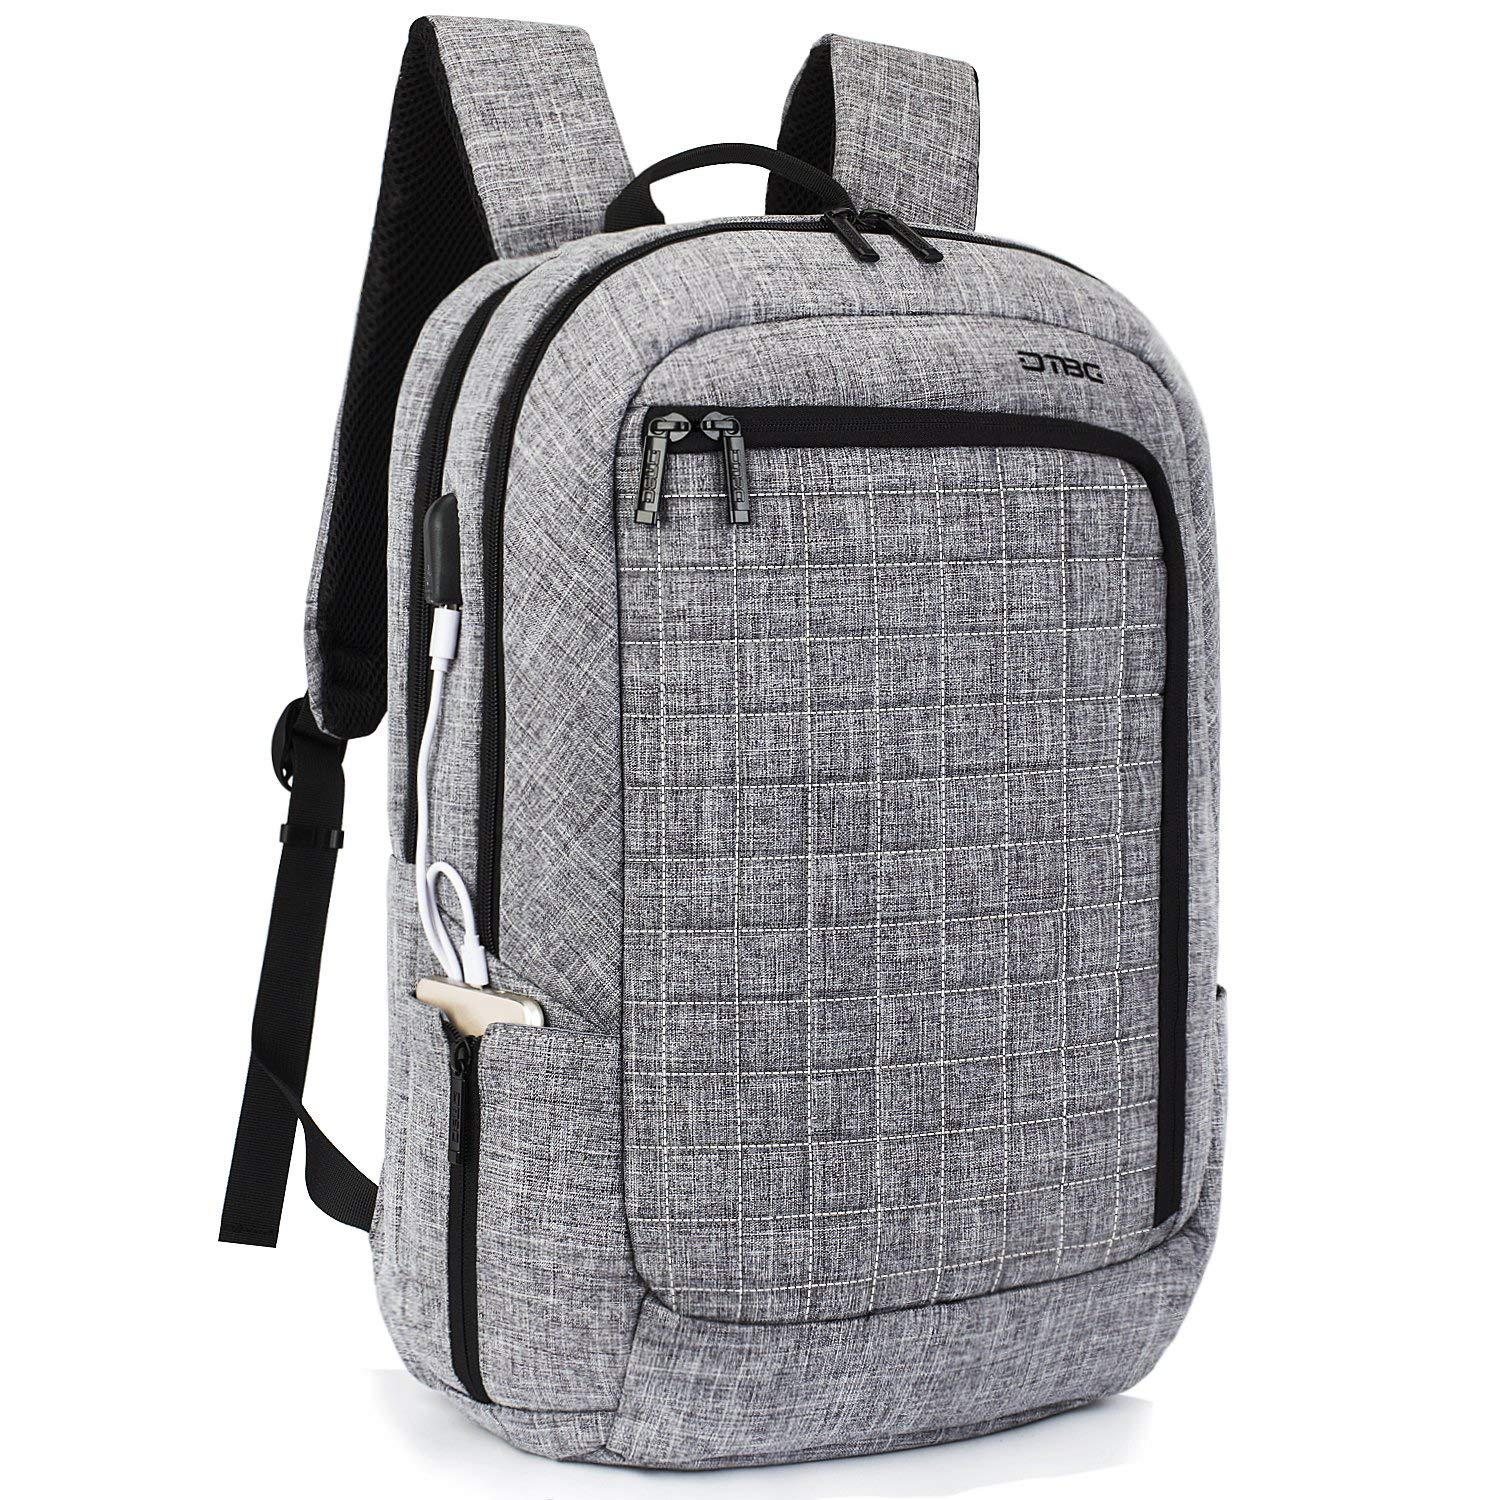 284ffd2960ef Buy DTBG Laptop Backpack 17.3 Inch with USB Charging Port, Water ...